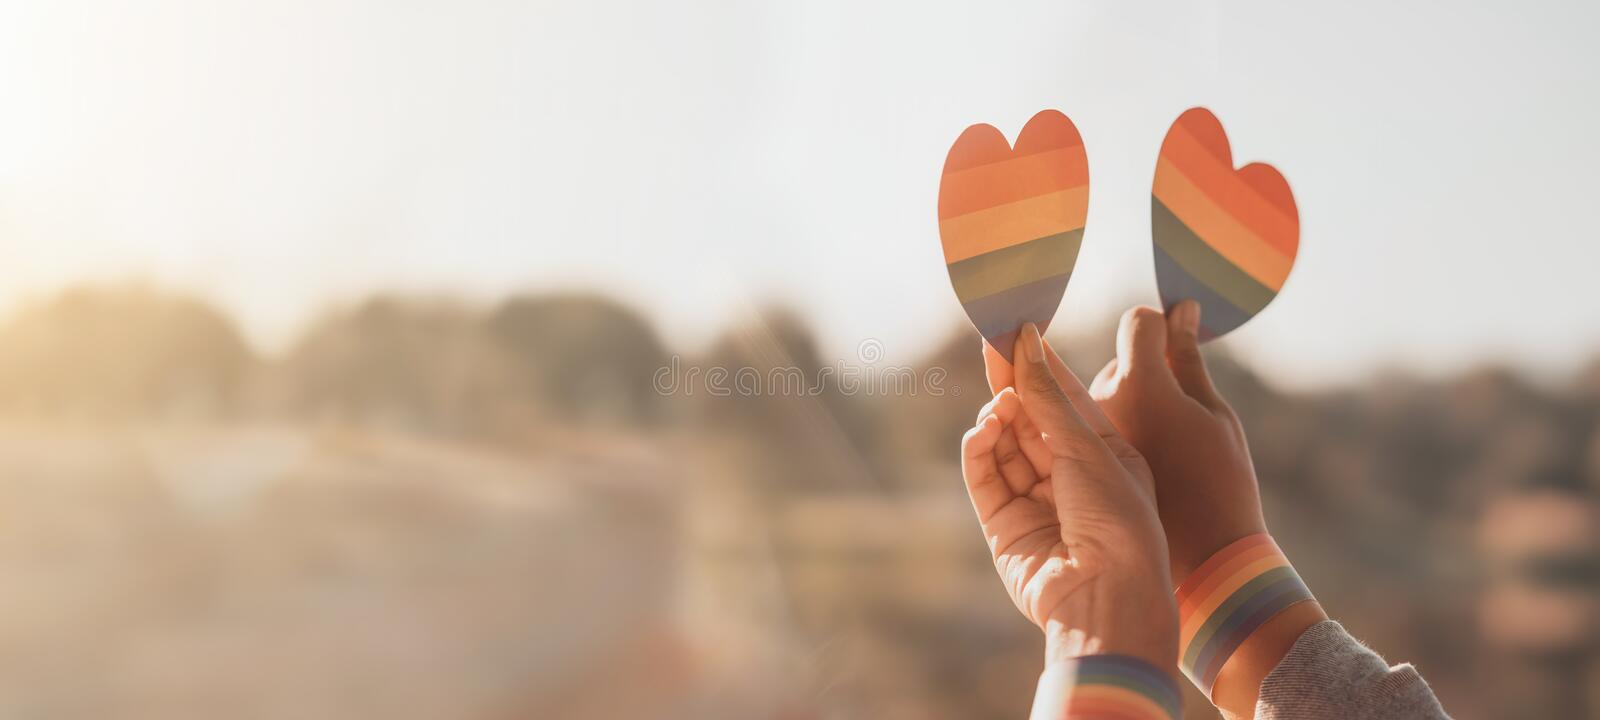 Cropped shot of women LGBT lesbian couple hands holding a heart shape painted like a rainbow pride. LGBT equal rights concept royalty free stock photography